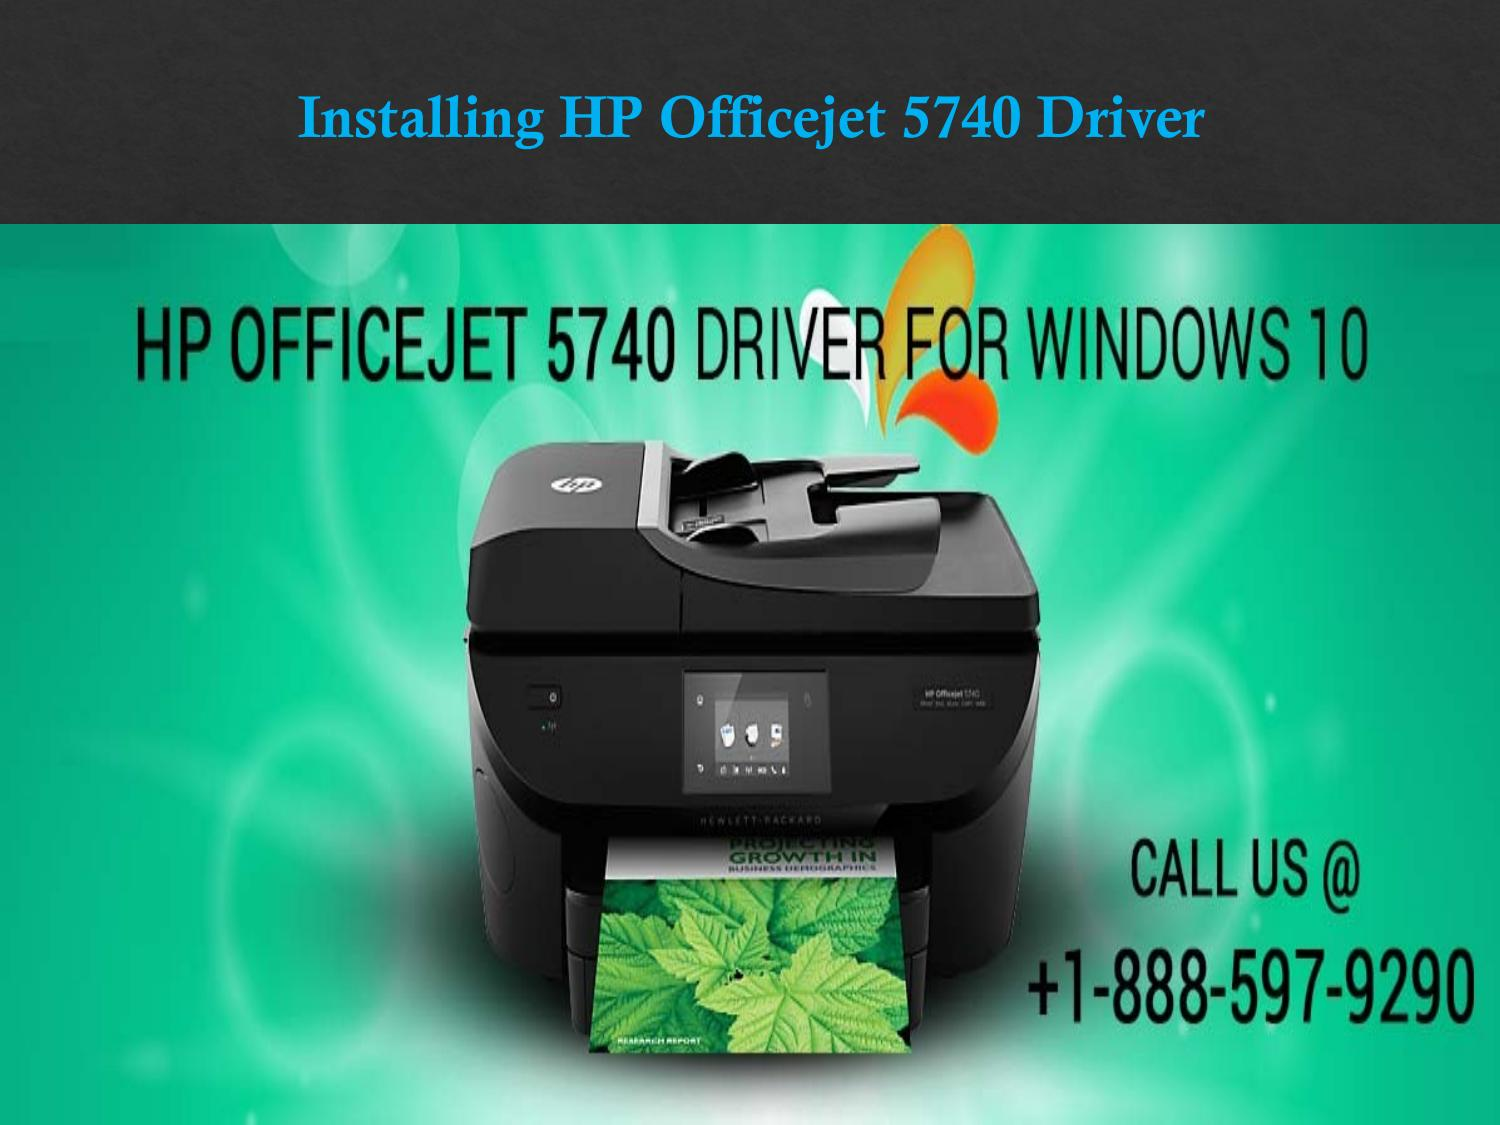 Setup your HP OfficeJet 5740 driver for Windows 10 by